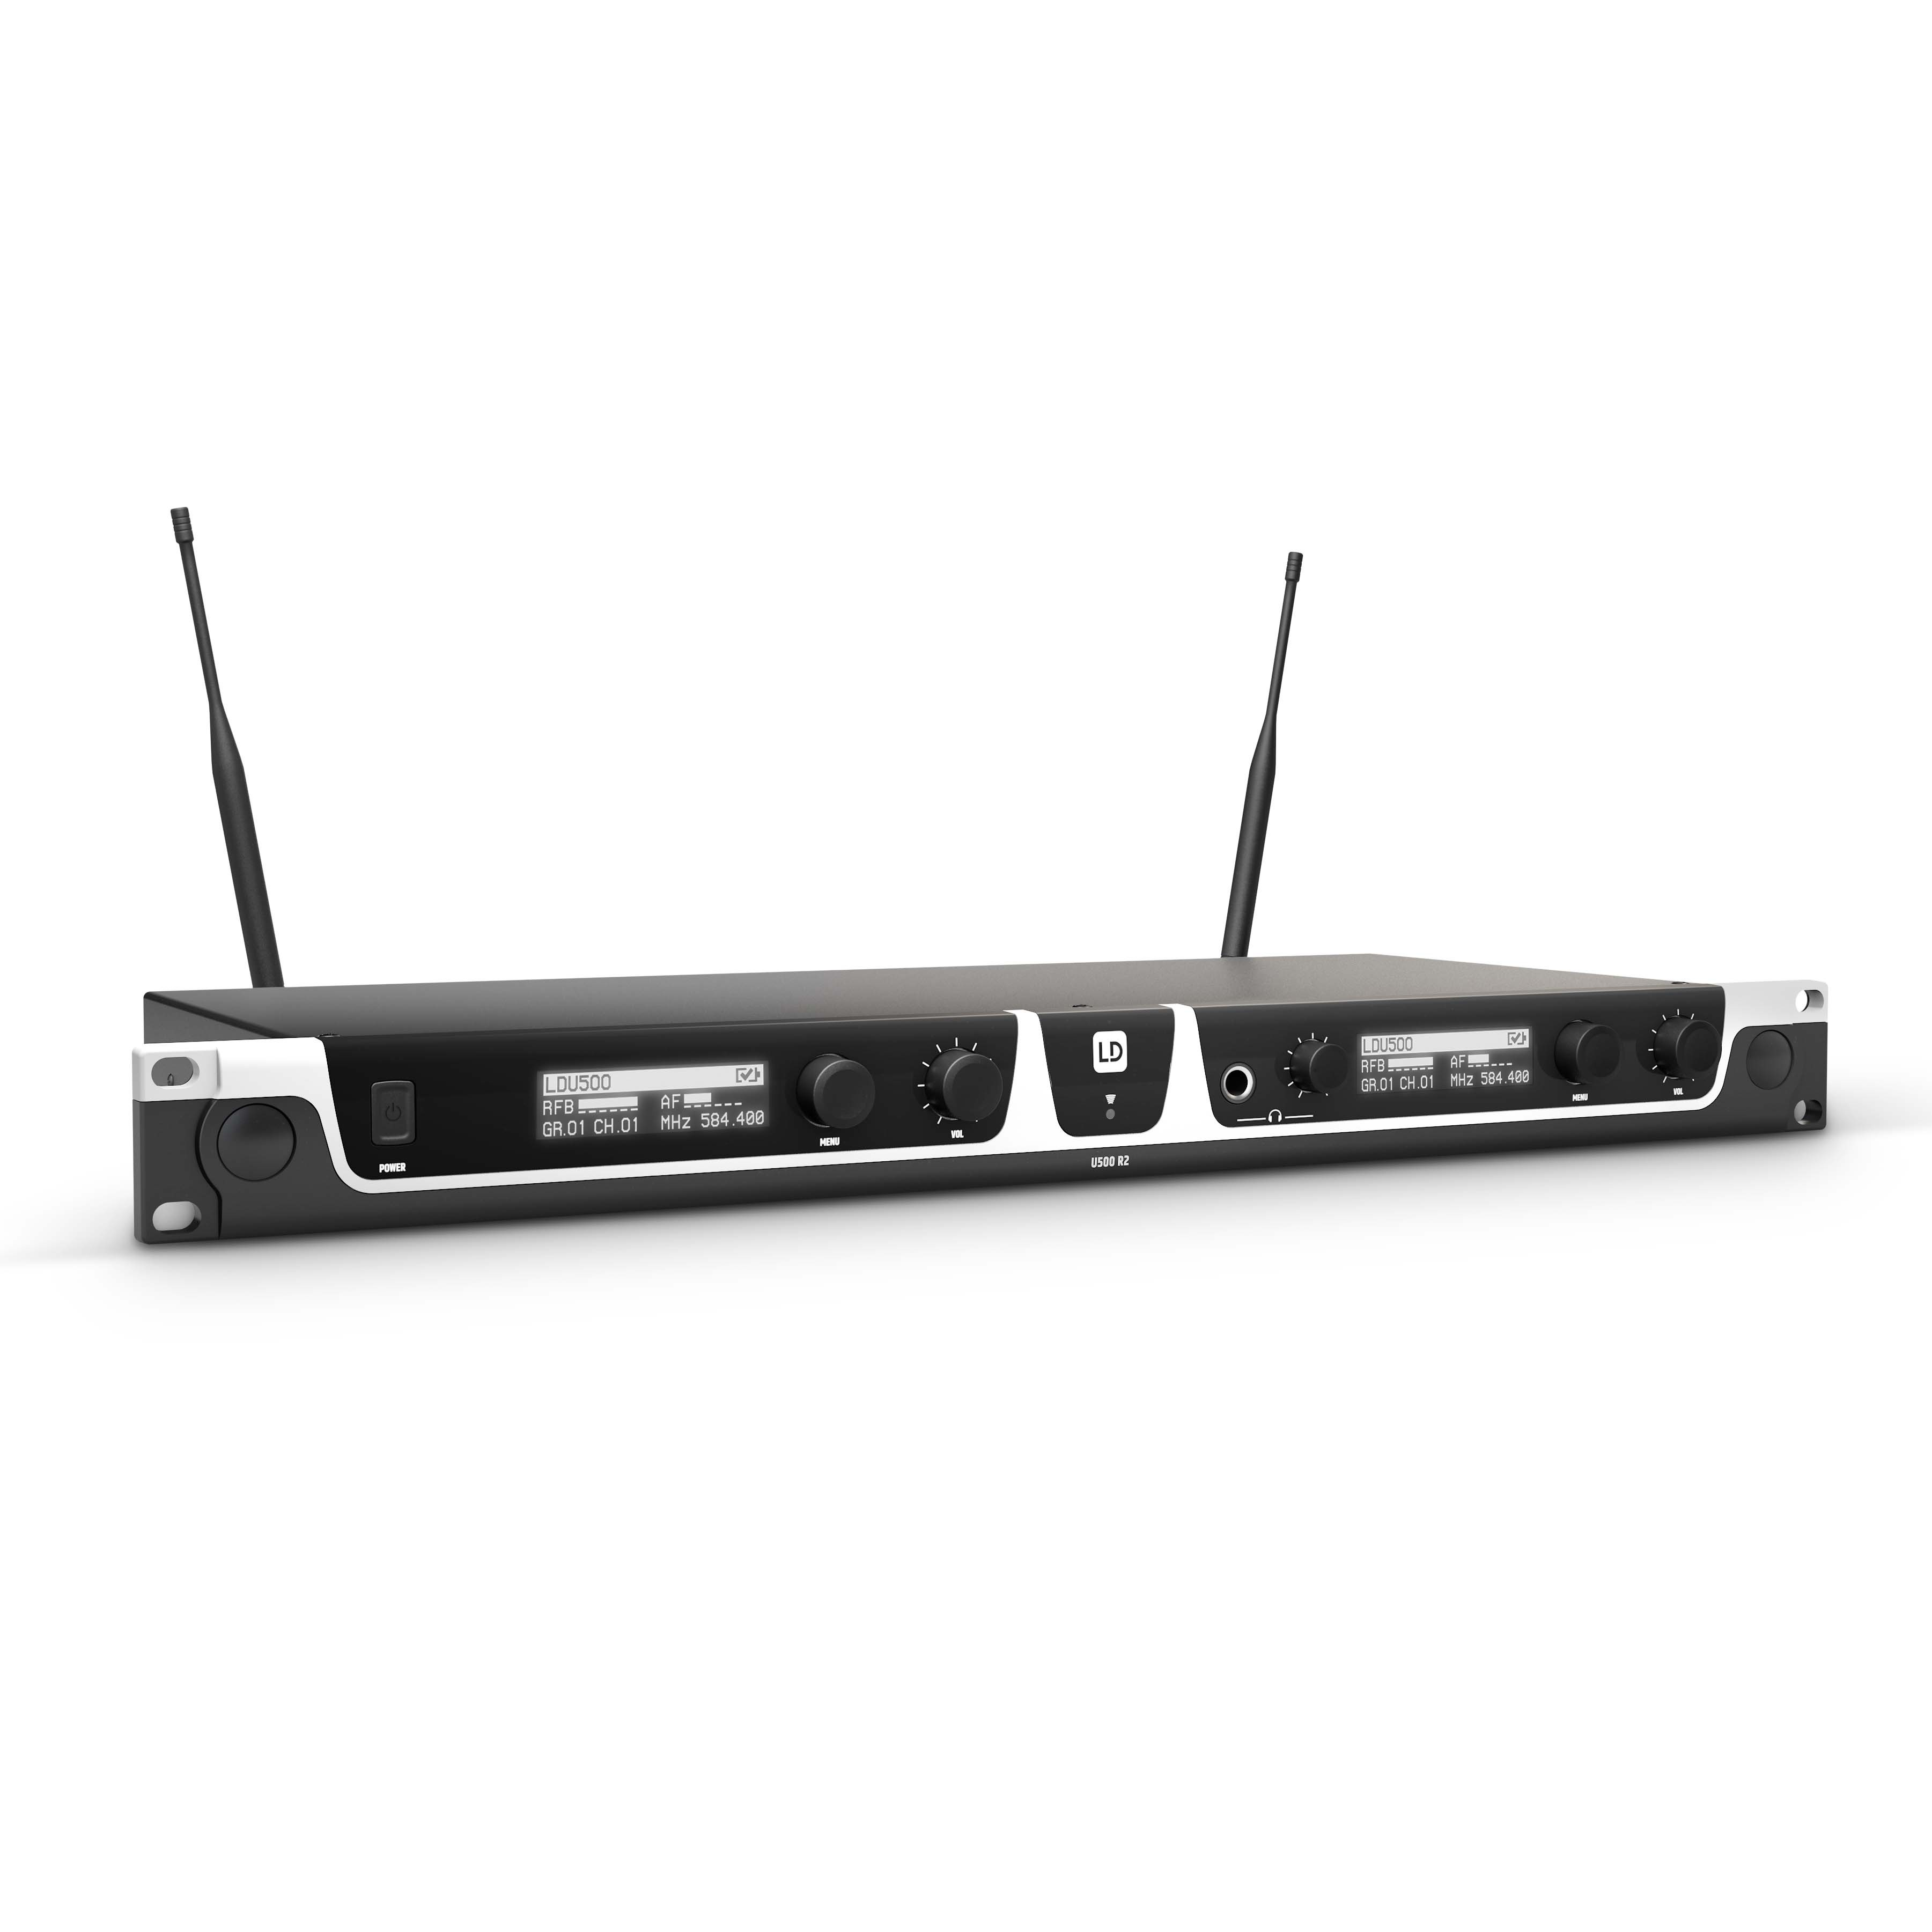 U505 BPH 2 Wireless Microphone System with 2 x Bodypack and 2 x Headset